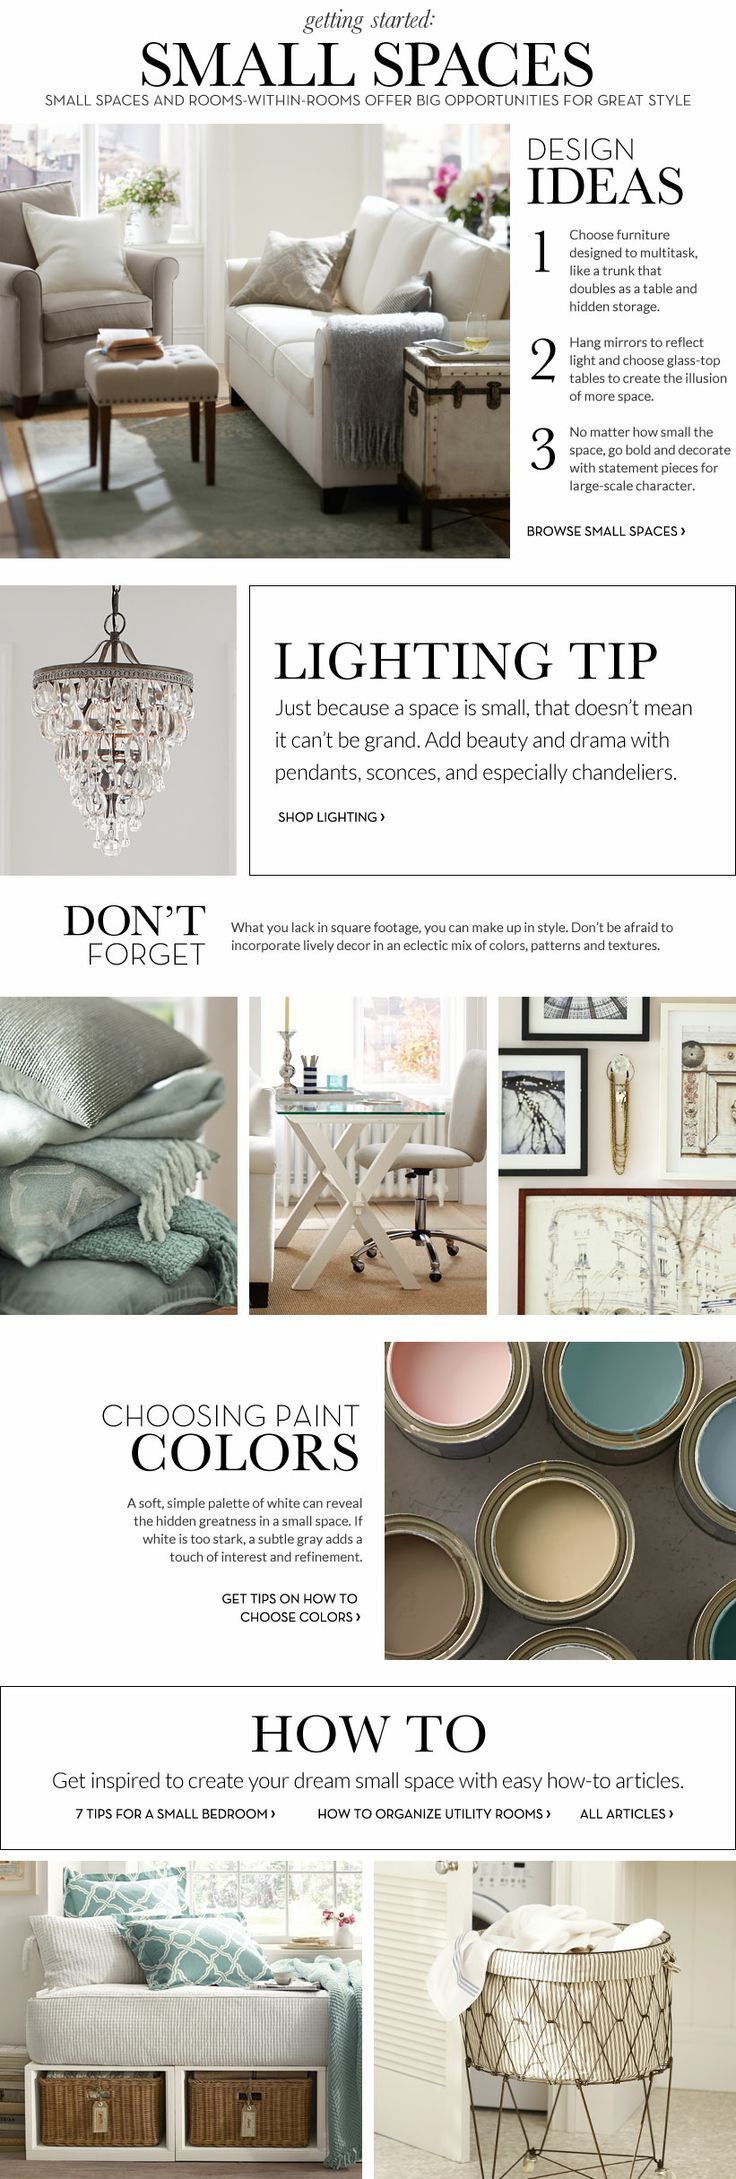 Small Spaces Inspiration Amp How To Decorate Small Spaces Pottery Barn